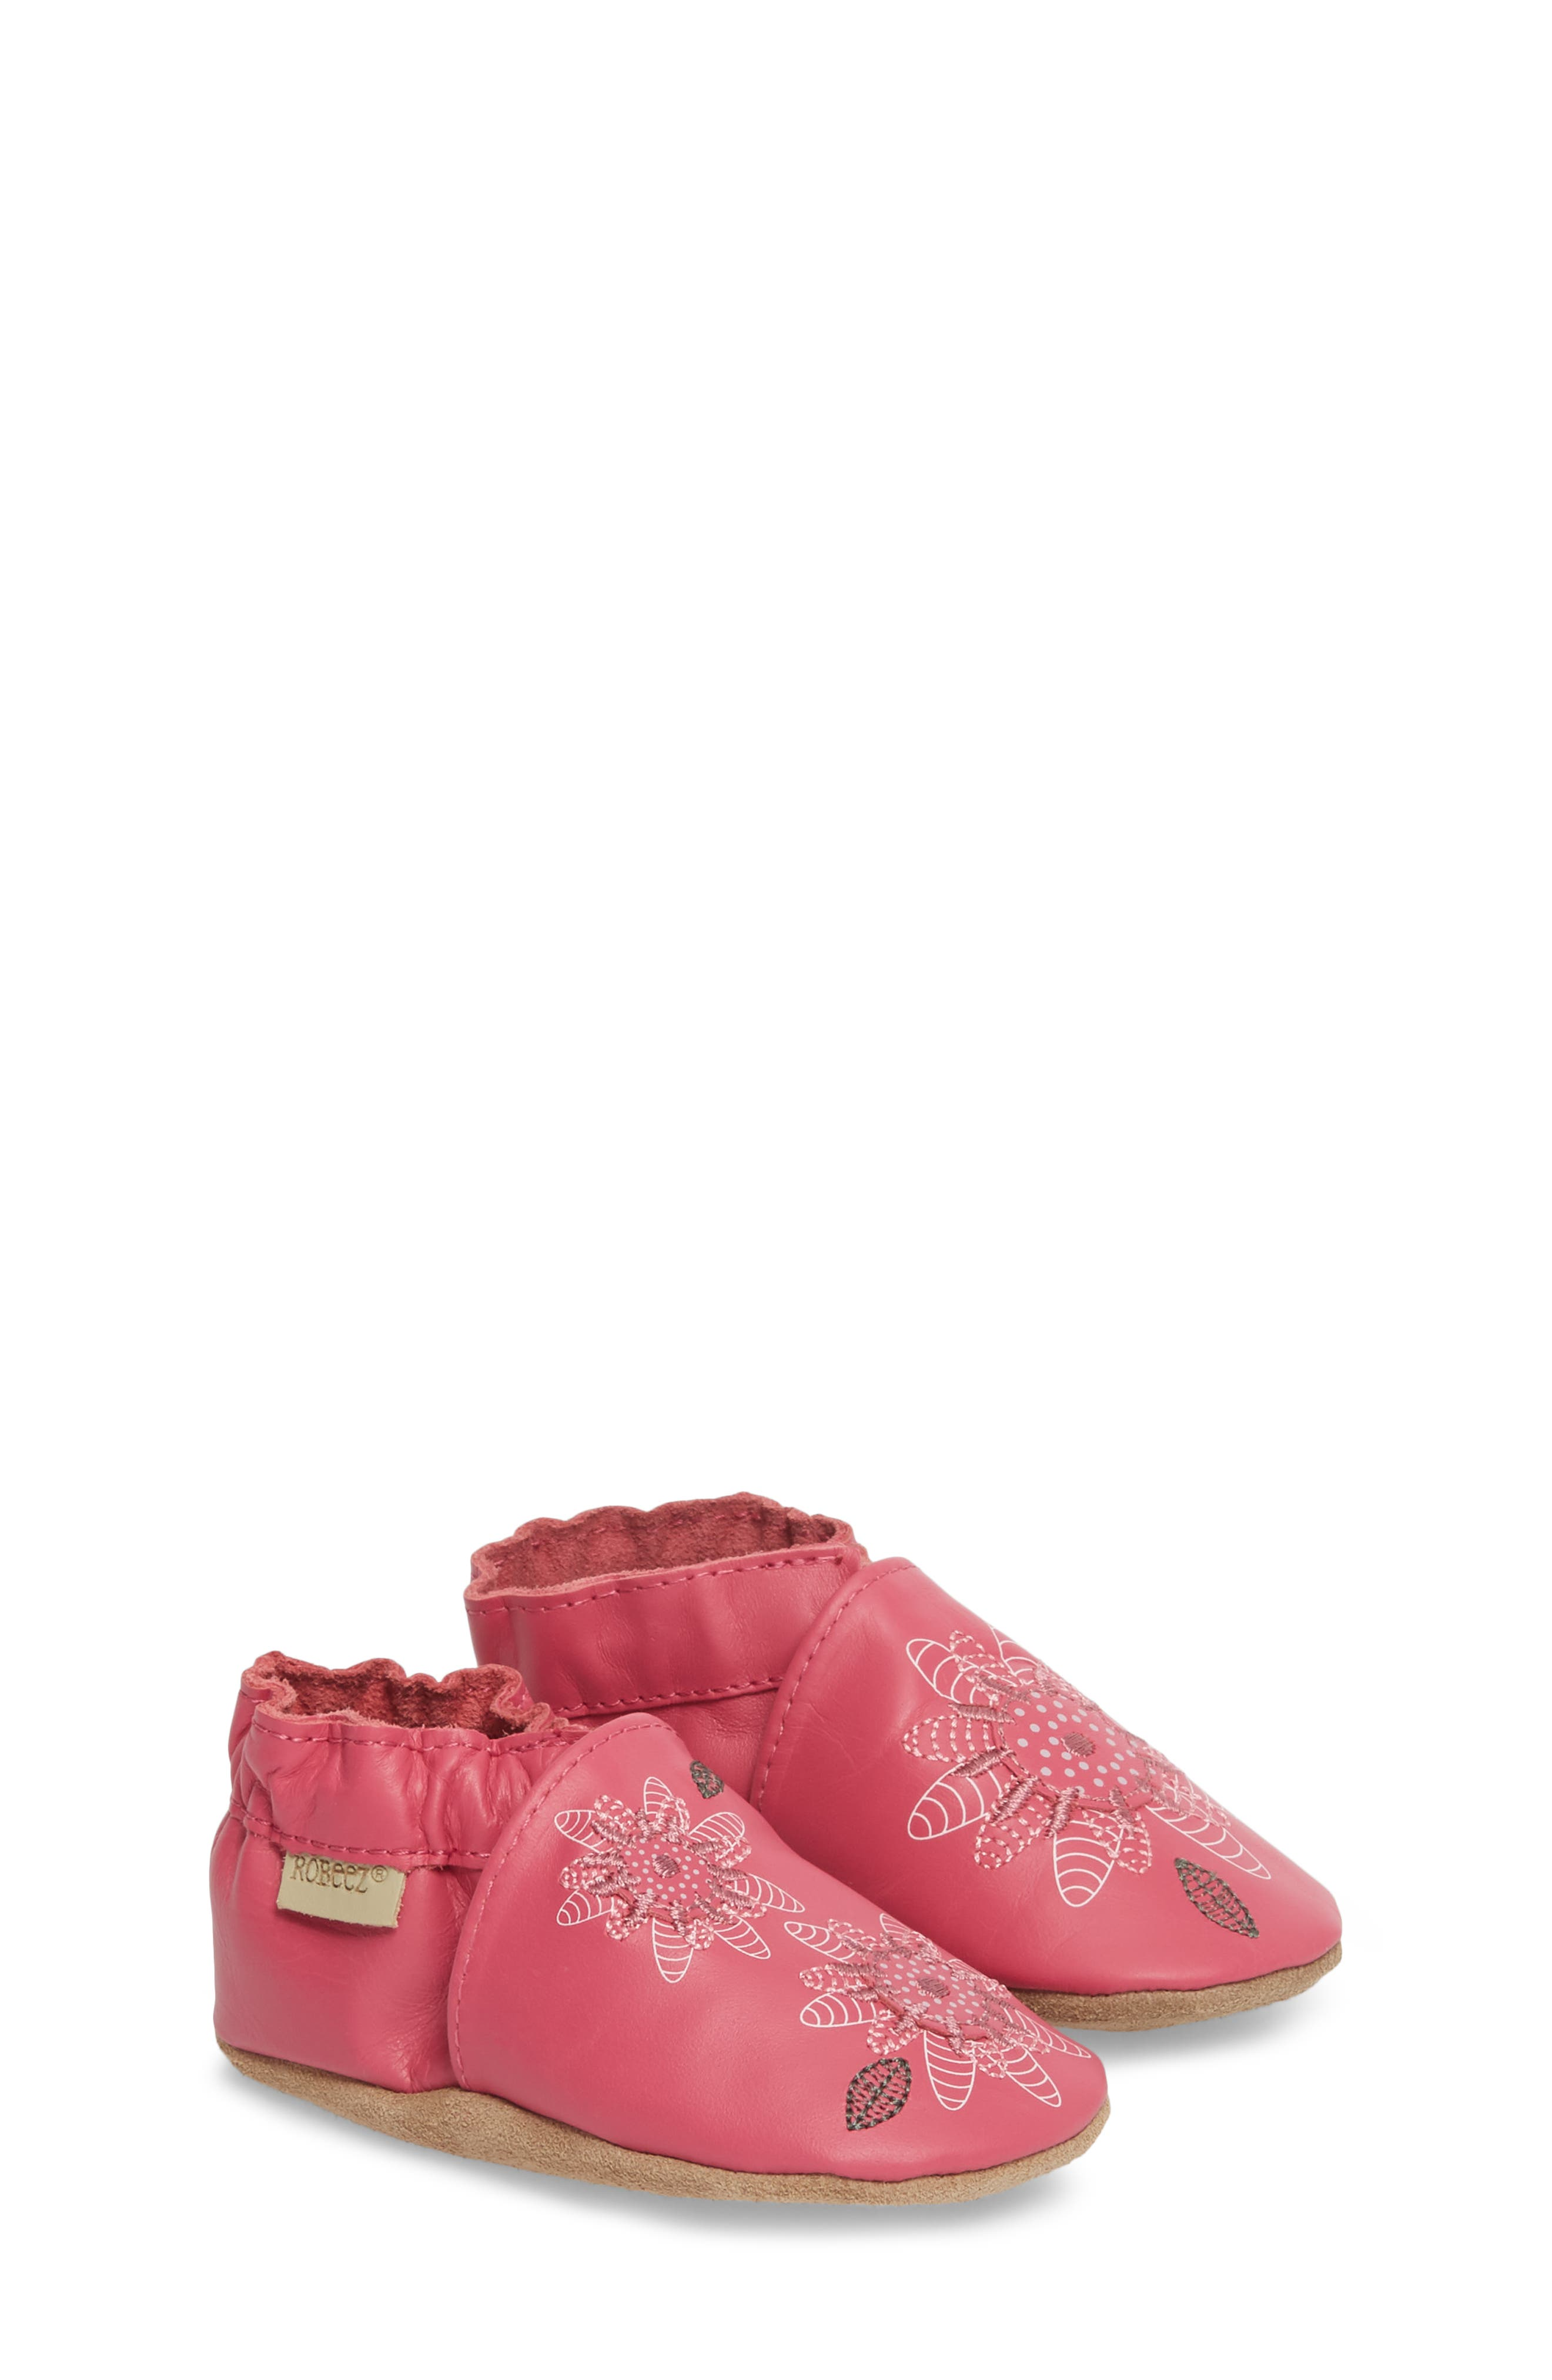 Fiona Flower Moccasin Crib Shoe,                             Alternate thumbnail 3, color,                             Hot Pink